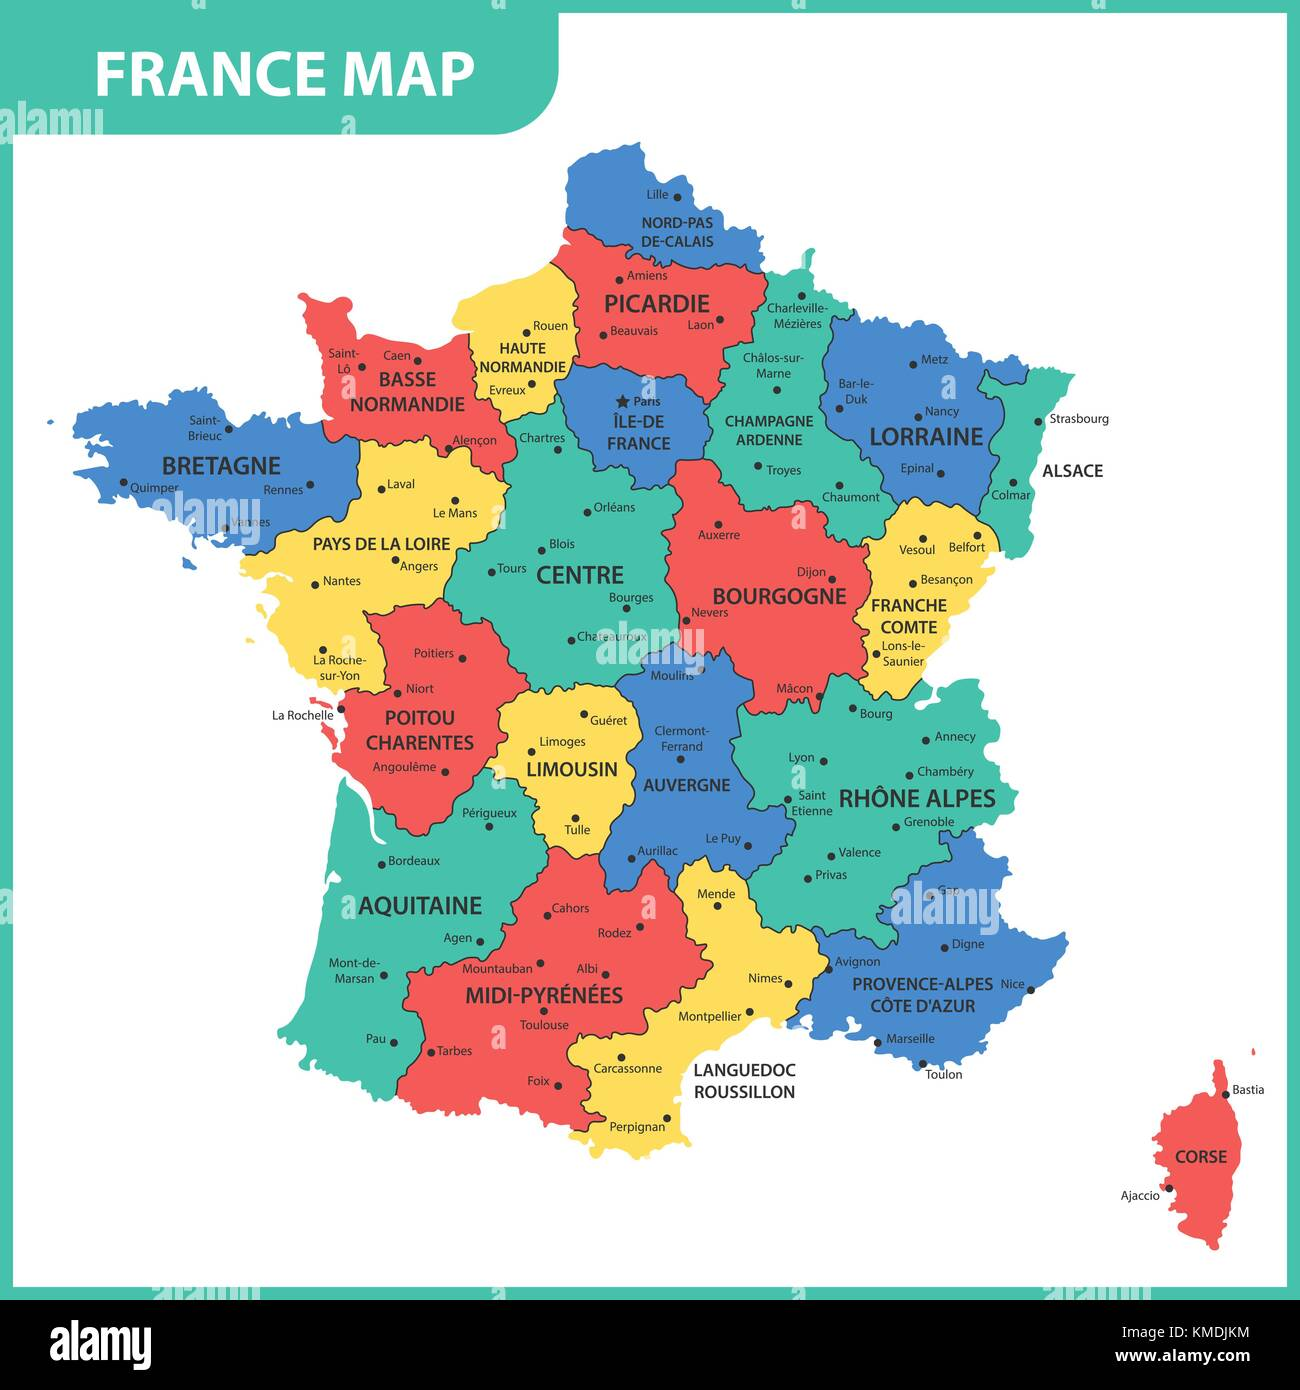 The Detailed Map Of The France With Regions Or States And Cities